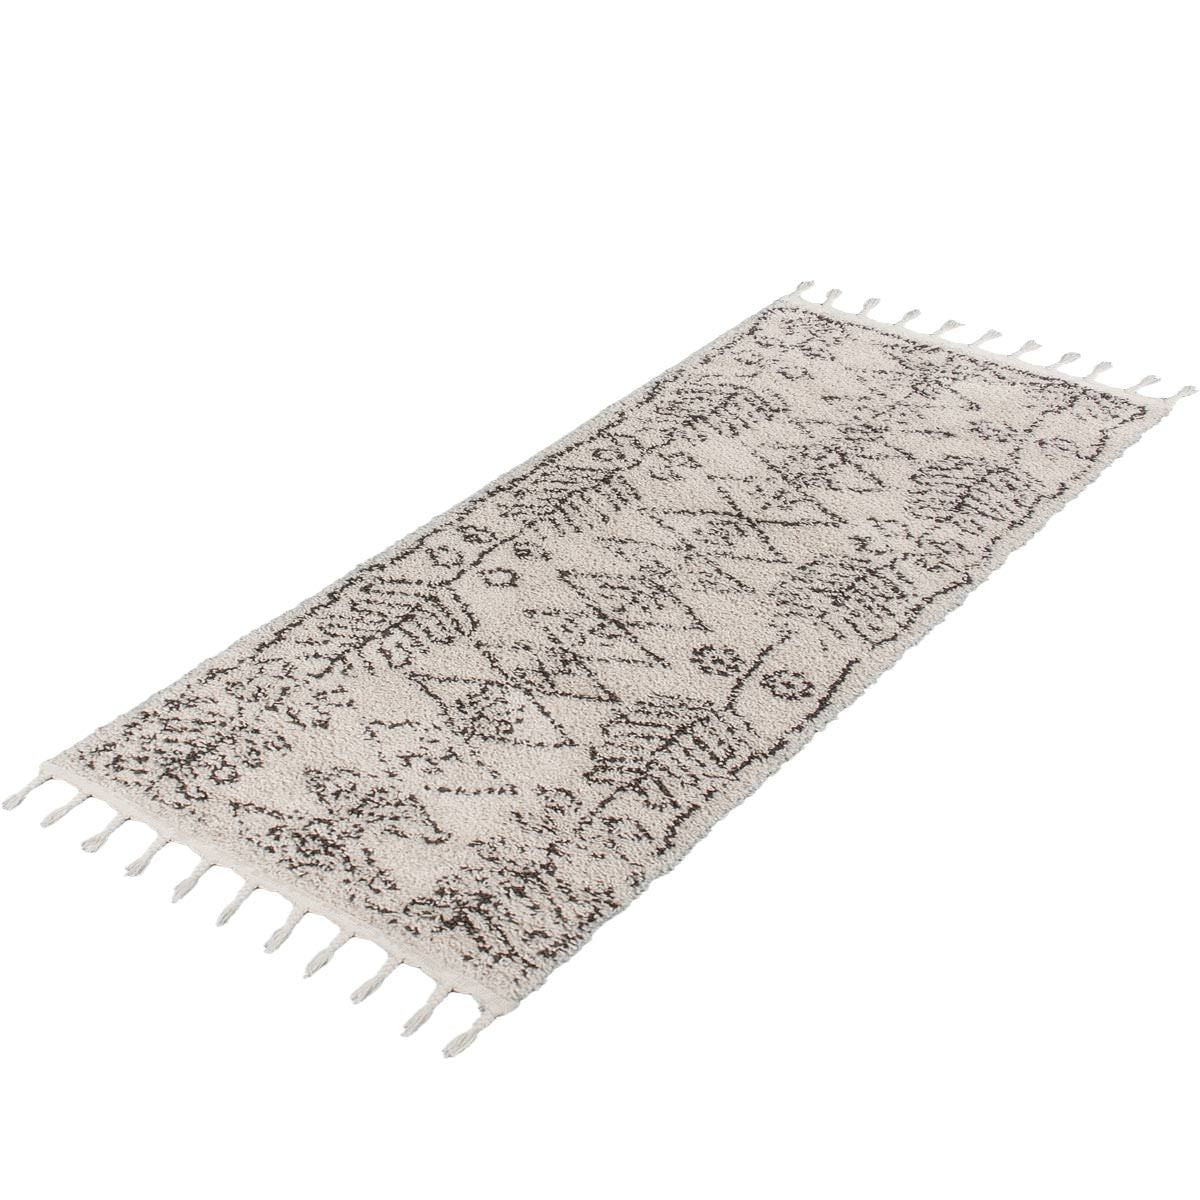 Shaggy Marrakech Rug 01 Cream/Black Runner 4